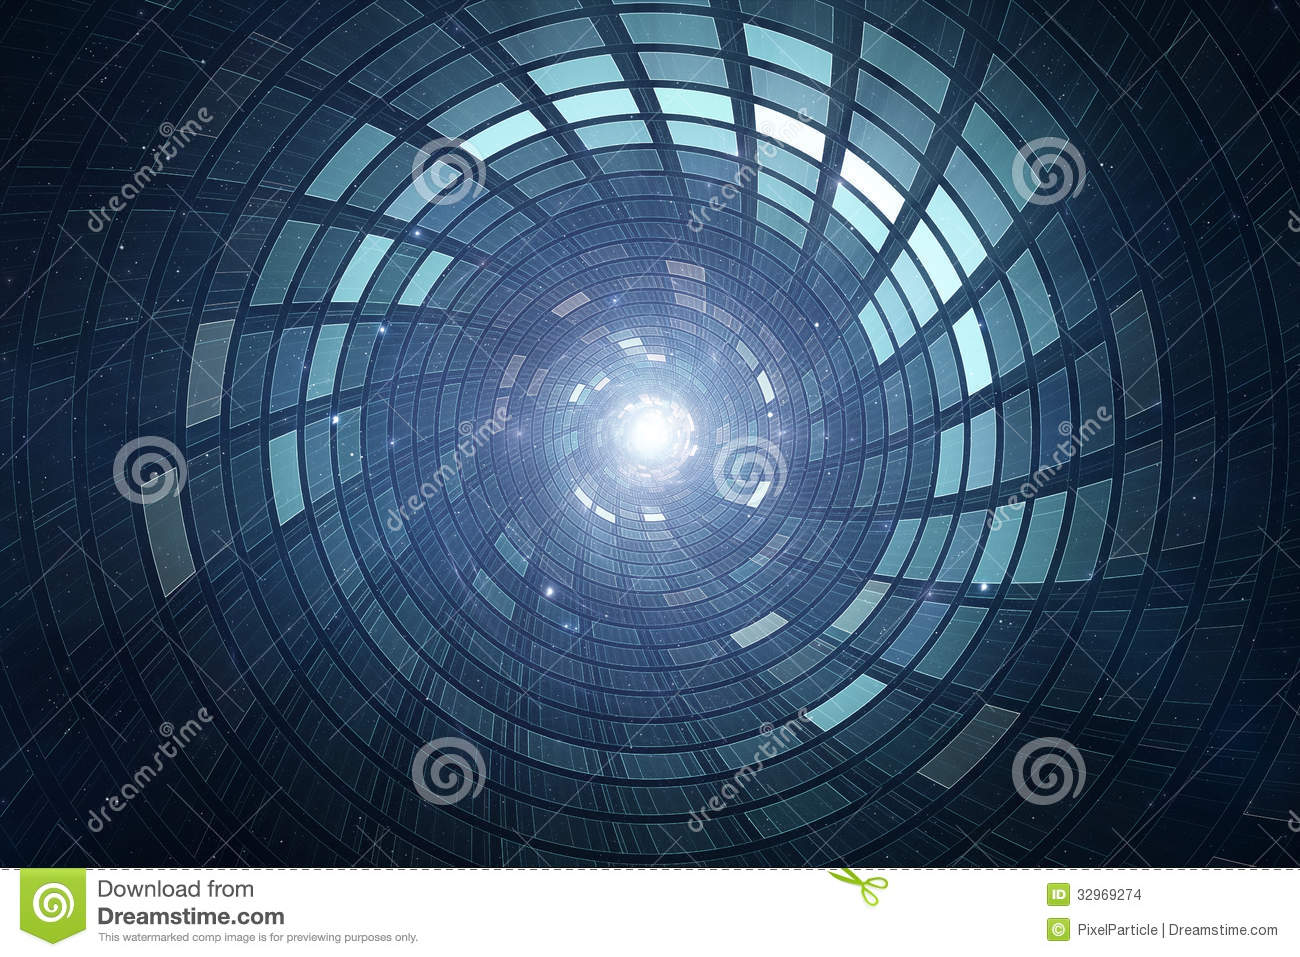 Royalty-Free Stock Photo & 3D Abstract Science Fiction Futuristic Background Stock Illustration ...